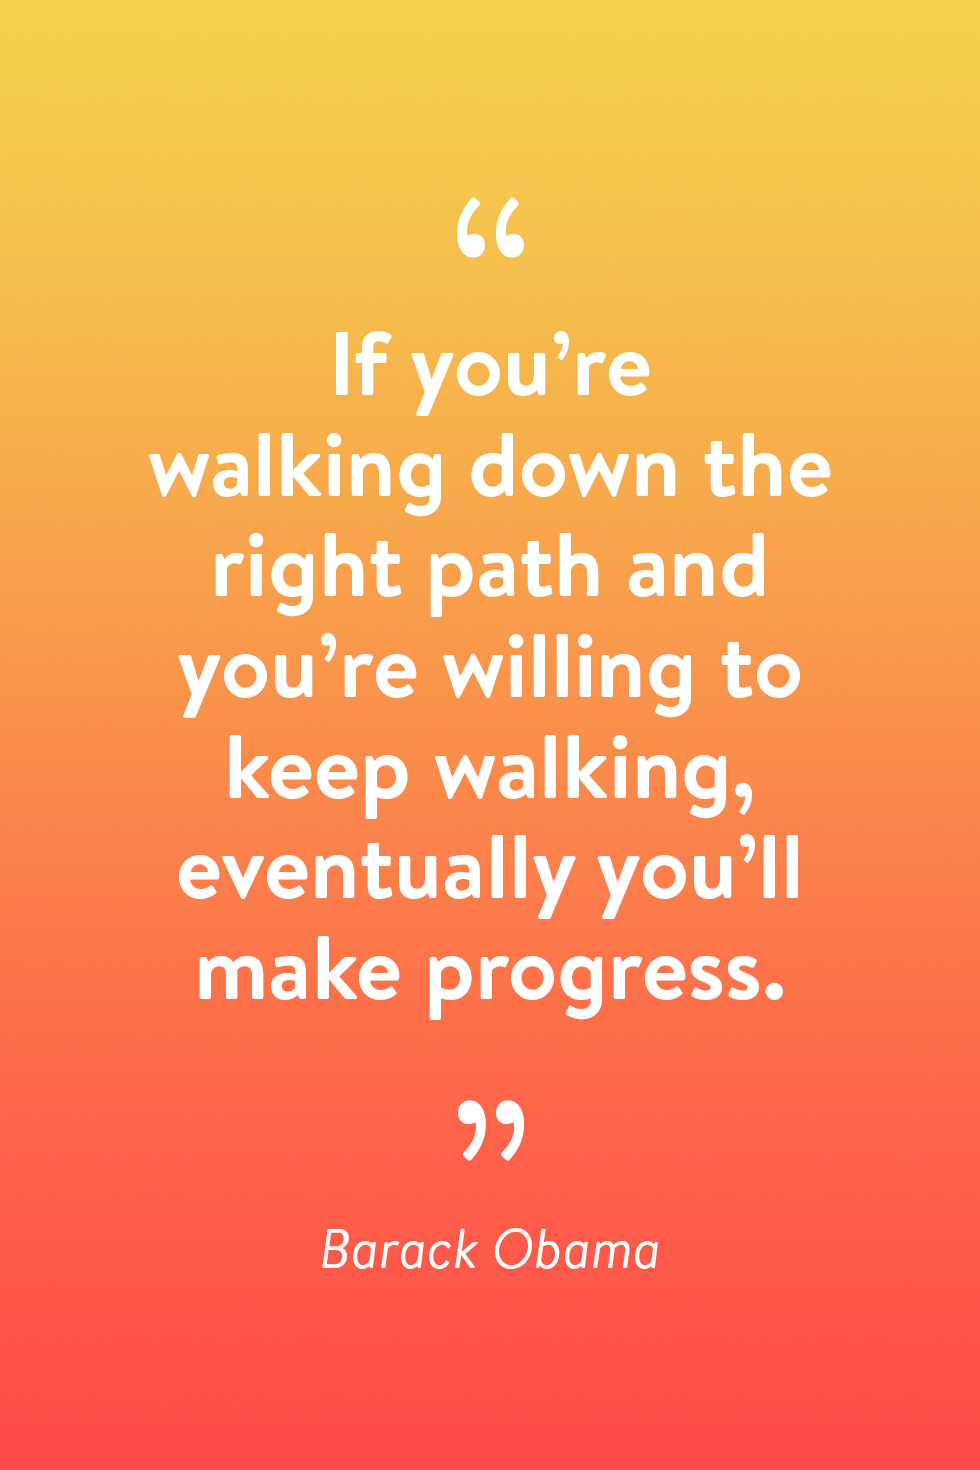 Quotes About Progress 20 Motivational Quotes To Help You Reach Your Diet And Fitness